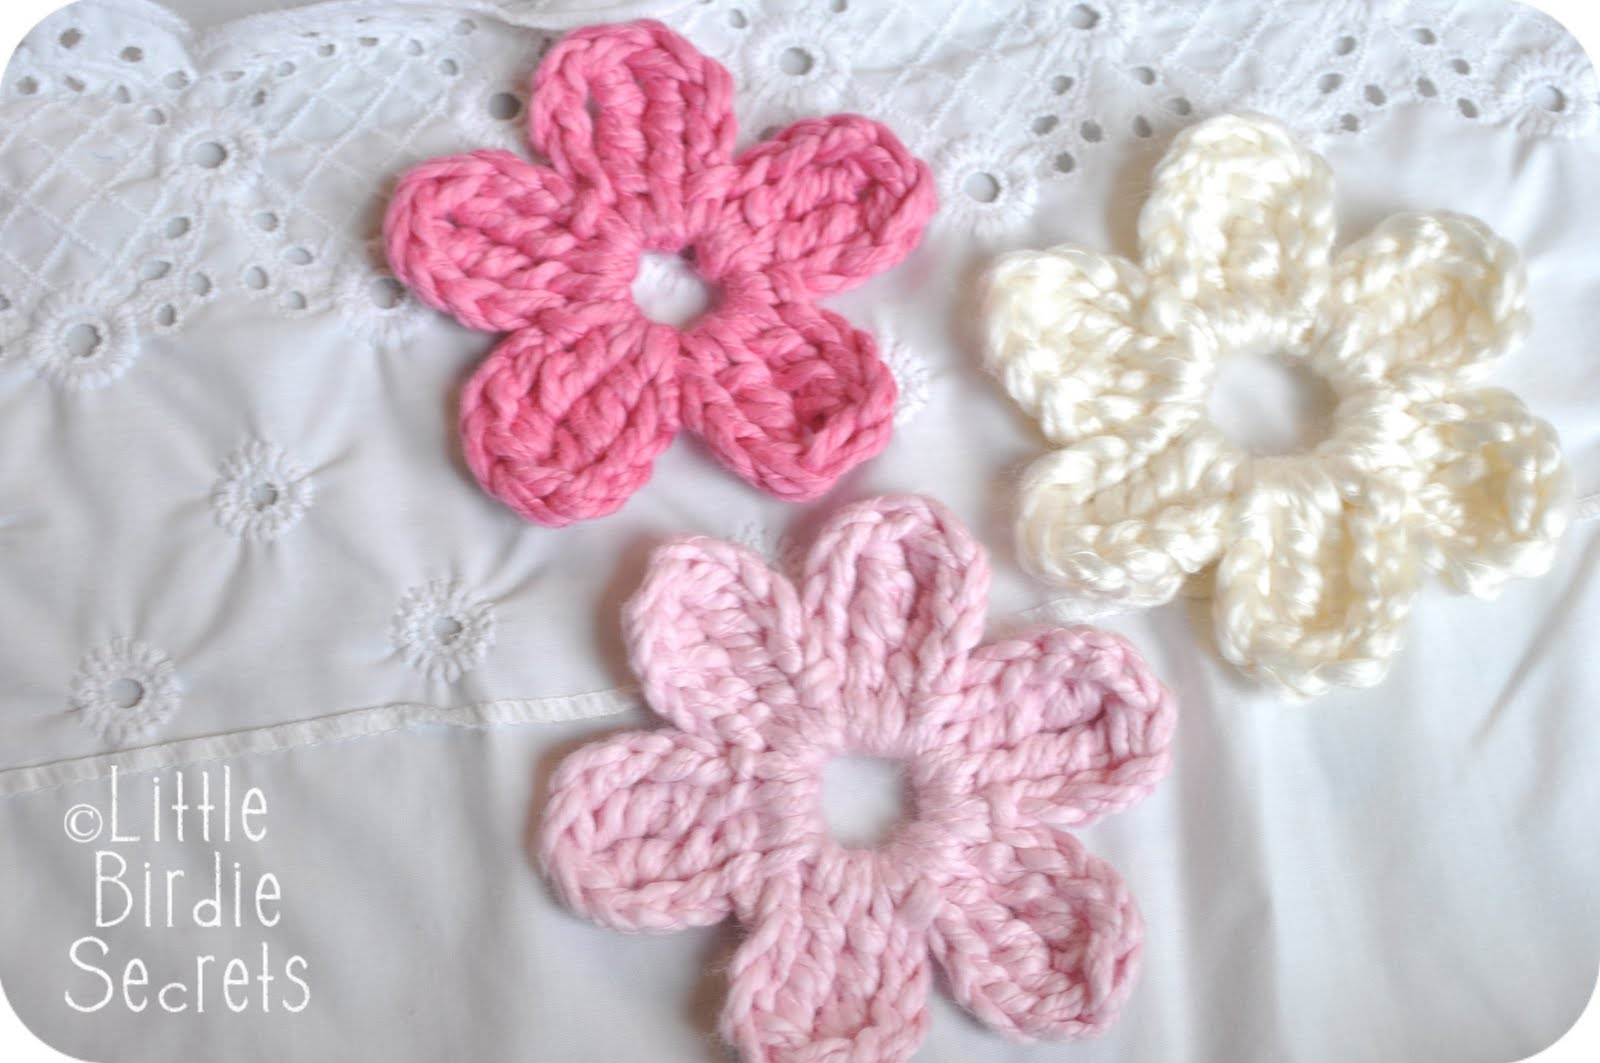 Easy Crochet Flower Patterns For Hats : new baby hat and bootie patterns in the shop {plus a free ...